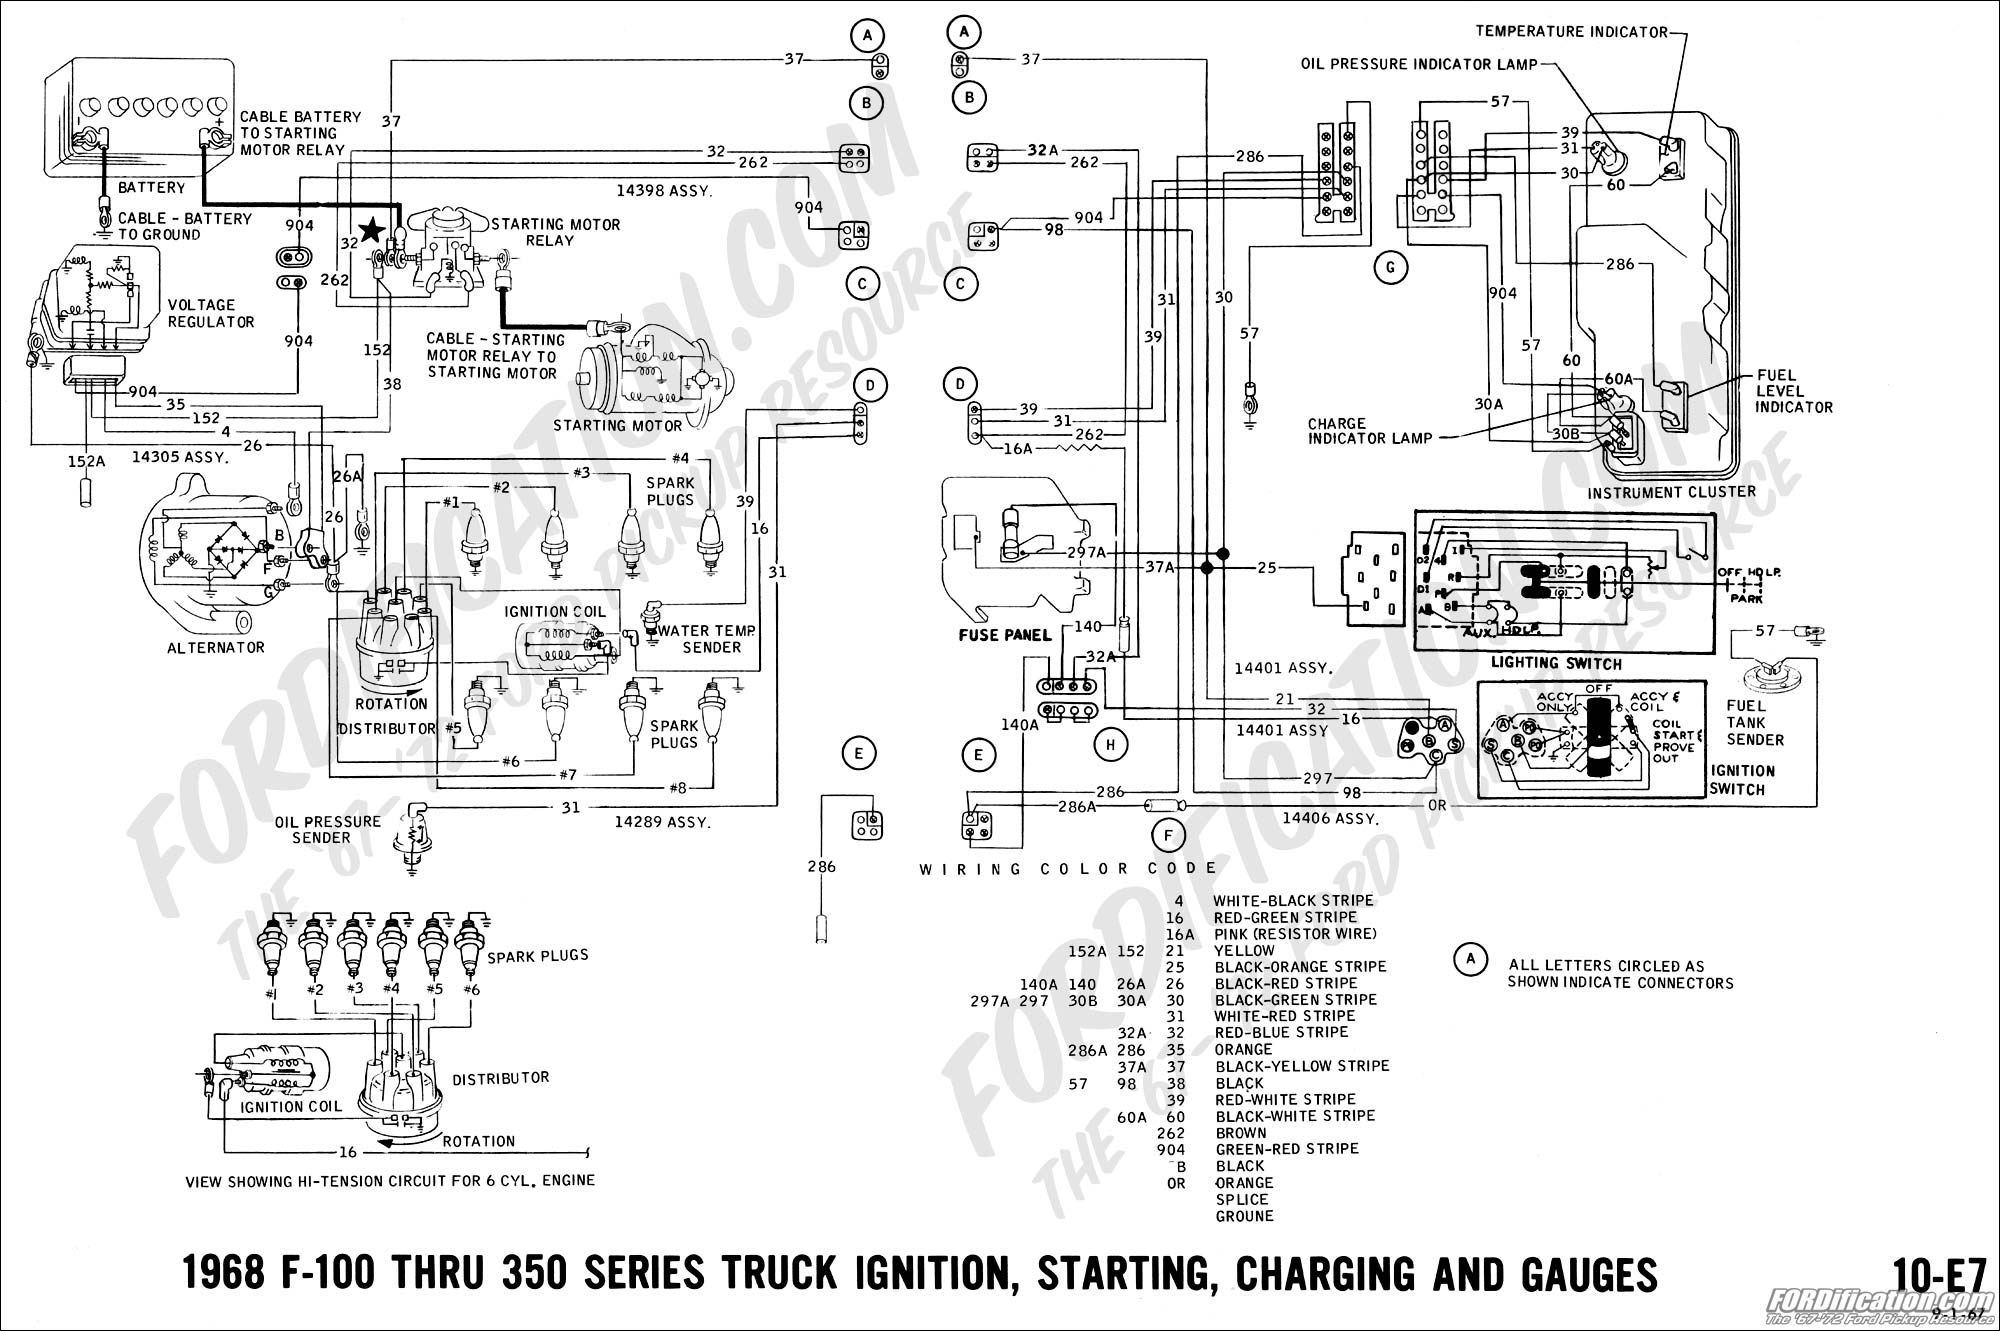 72 ford alternator wiring diagram 1979 ford f 150 wiring diagram rh banyan  palace com 1990